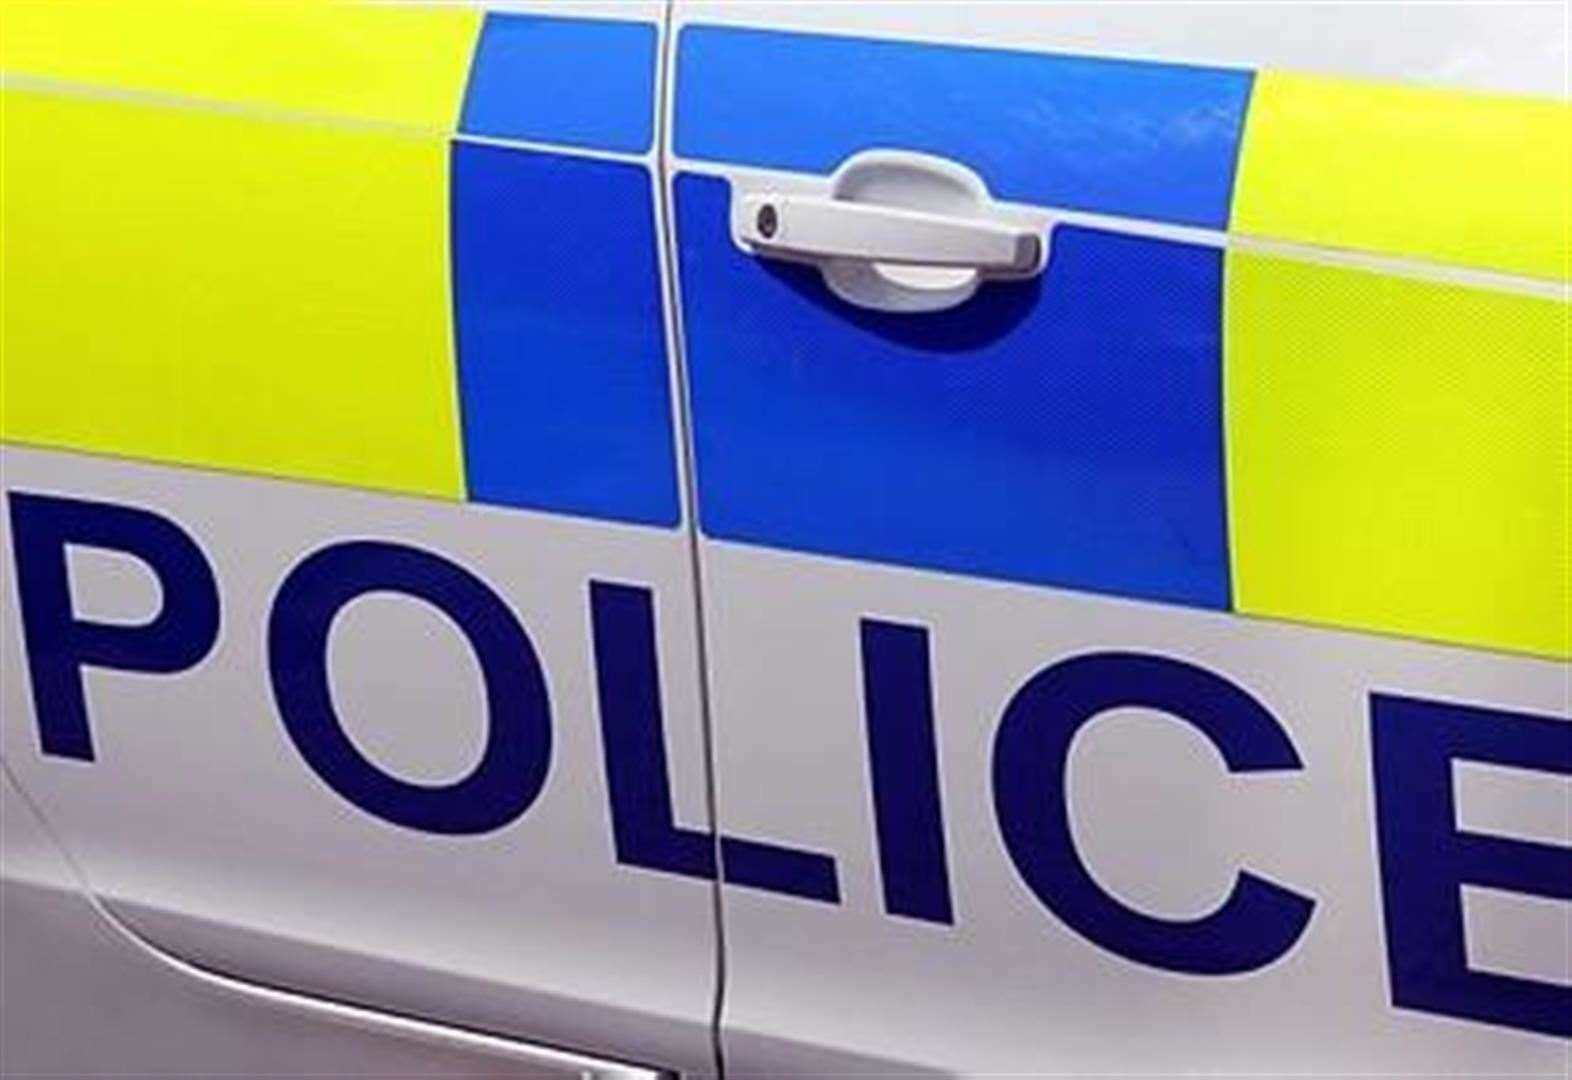 Suffolk Police have sent out an appeal after a house burglary in Haverhill